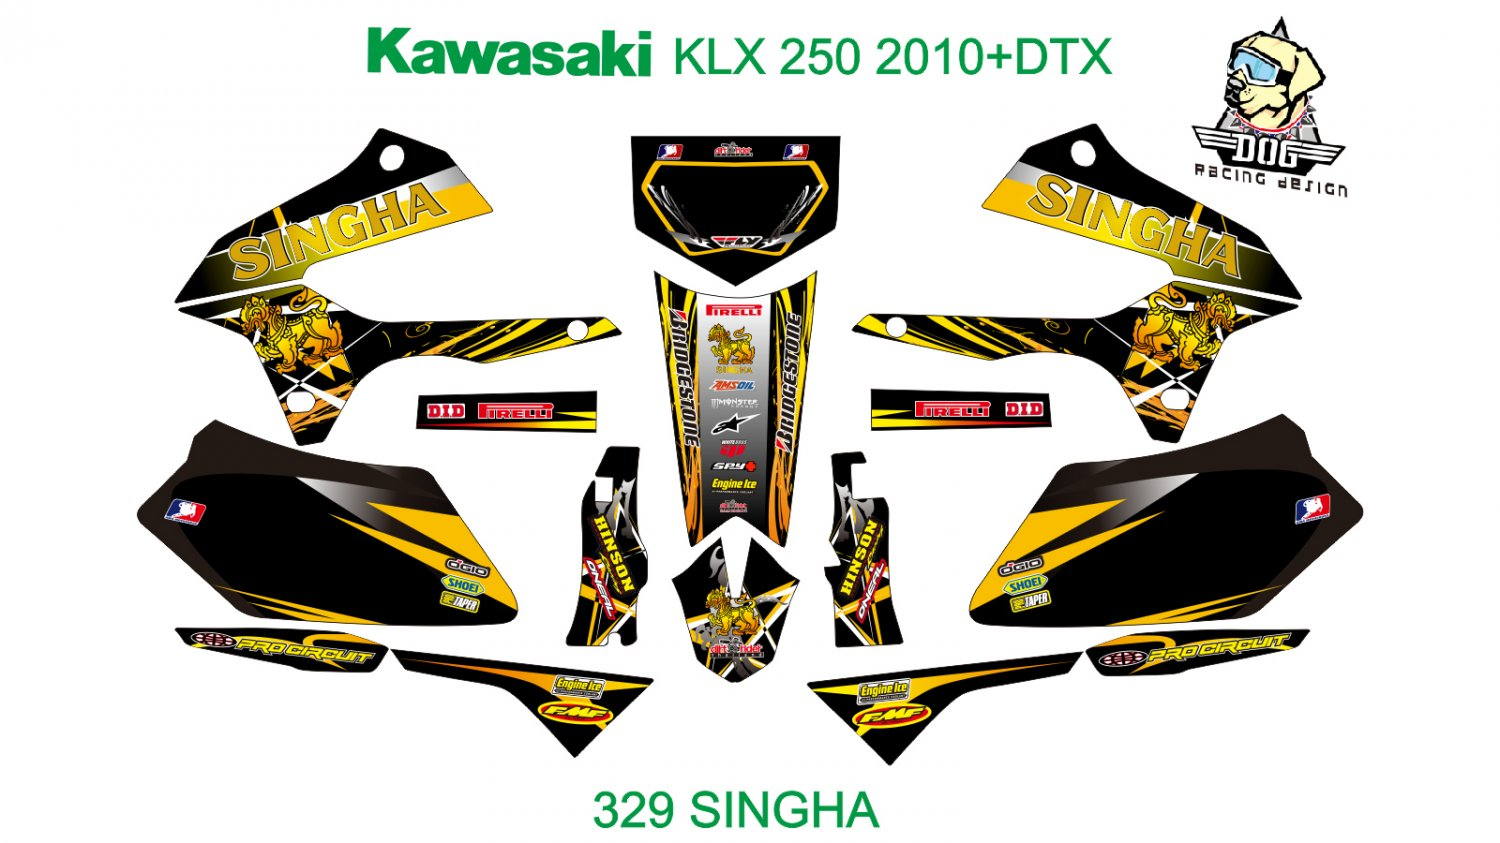 KAWASAKI KLX 250 2010+DTX GRAPHIC DECAL KIT CODE.329